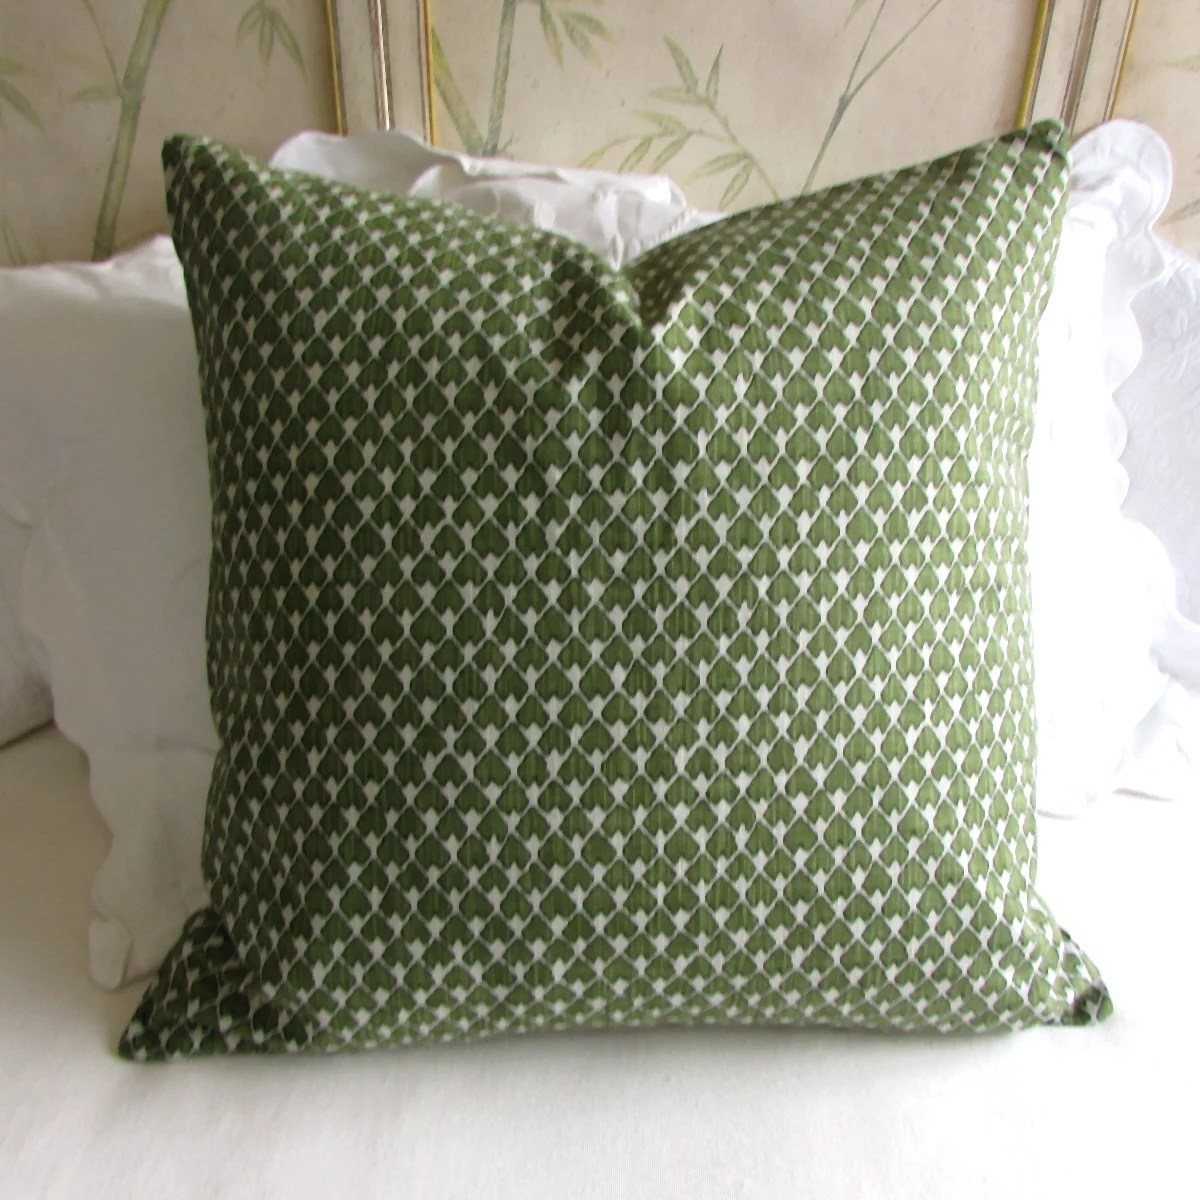 EURO PILLOW COVER 26x26 diegoolive green